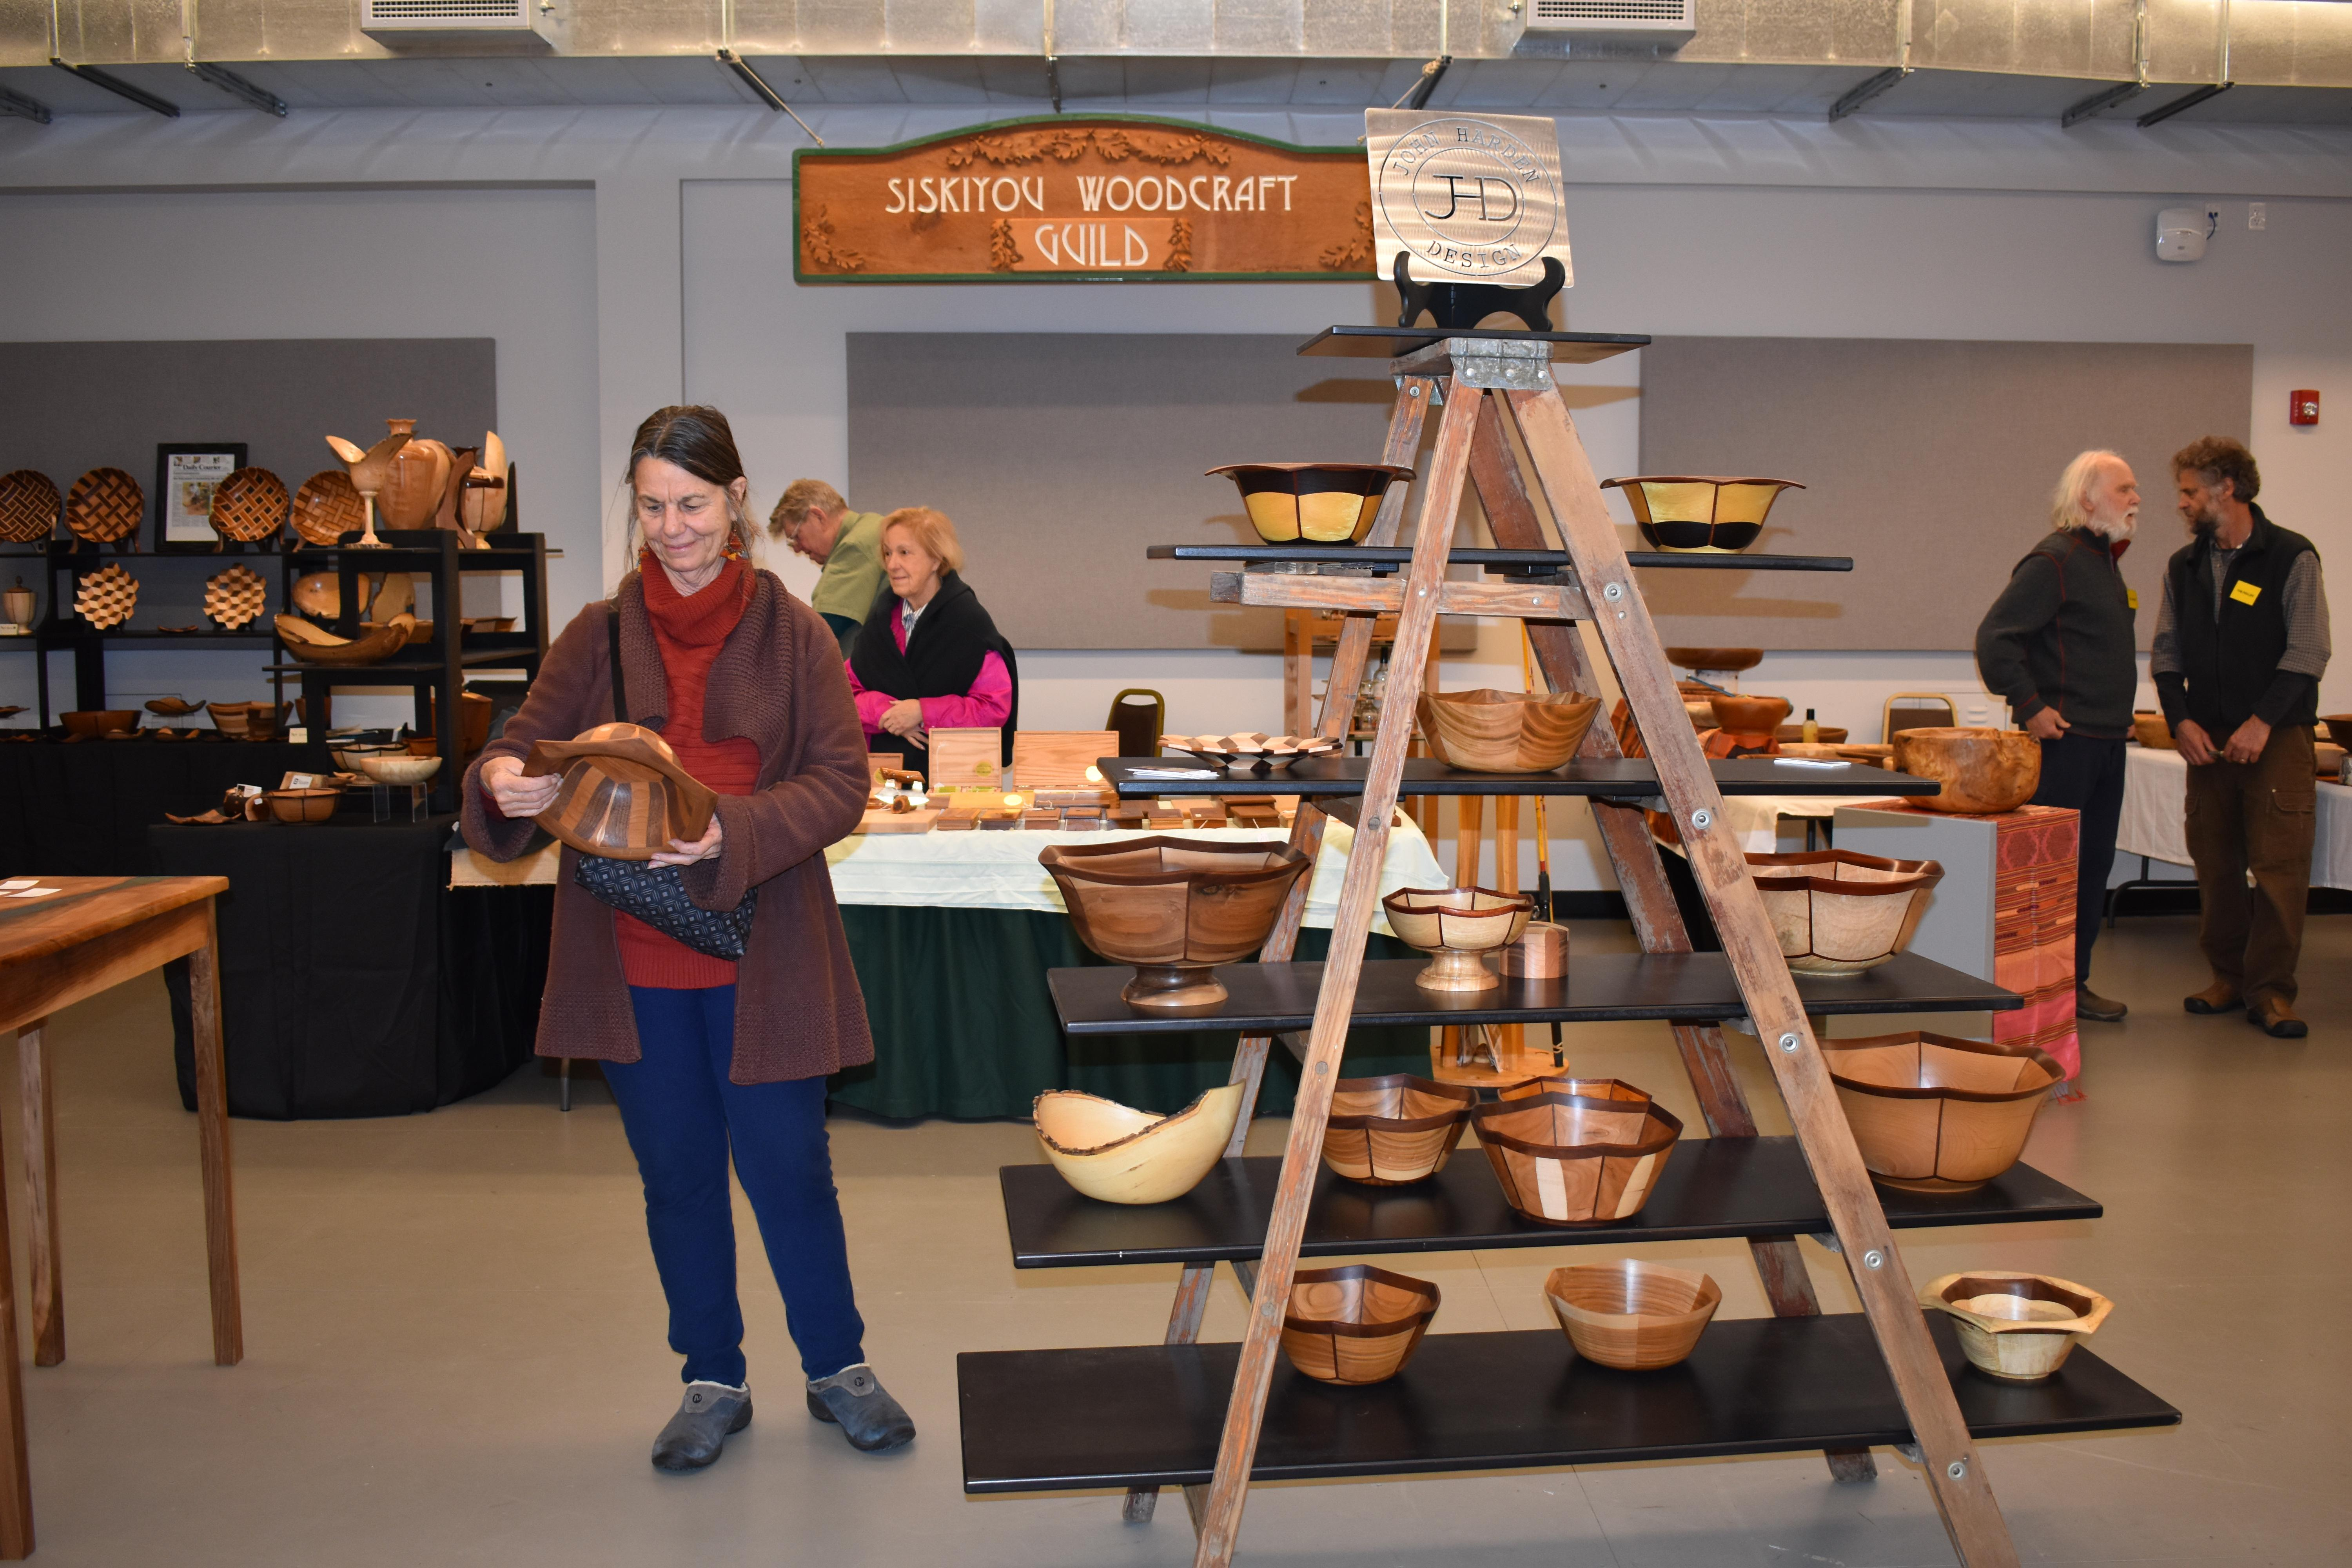 Wendy Seldon of Ashland examines a turned and segmented bowl with inlaid features made by John Harden of Grants Pass. Photo by Maureen Flanagan Battistella